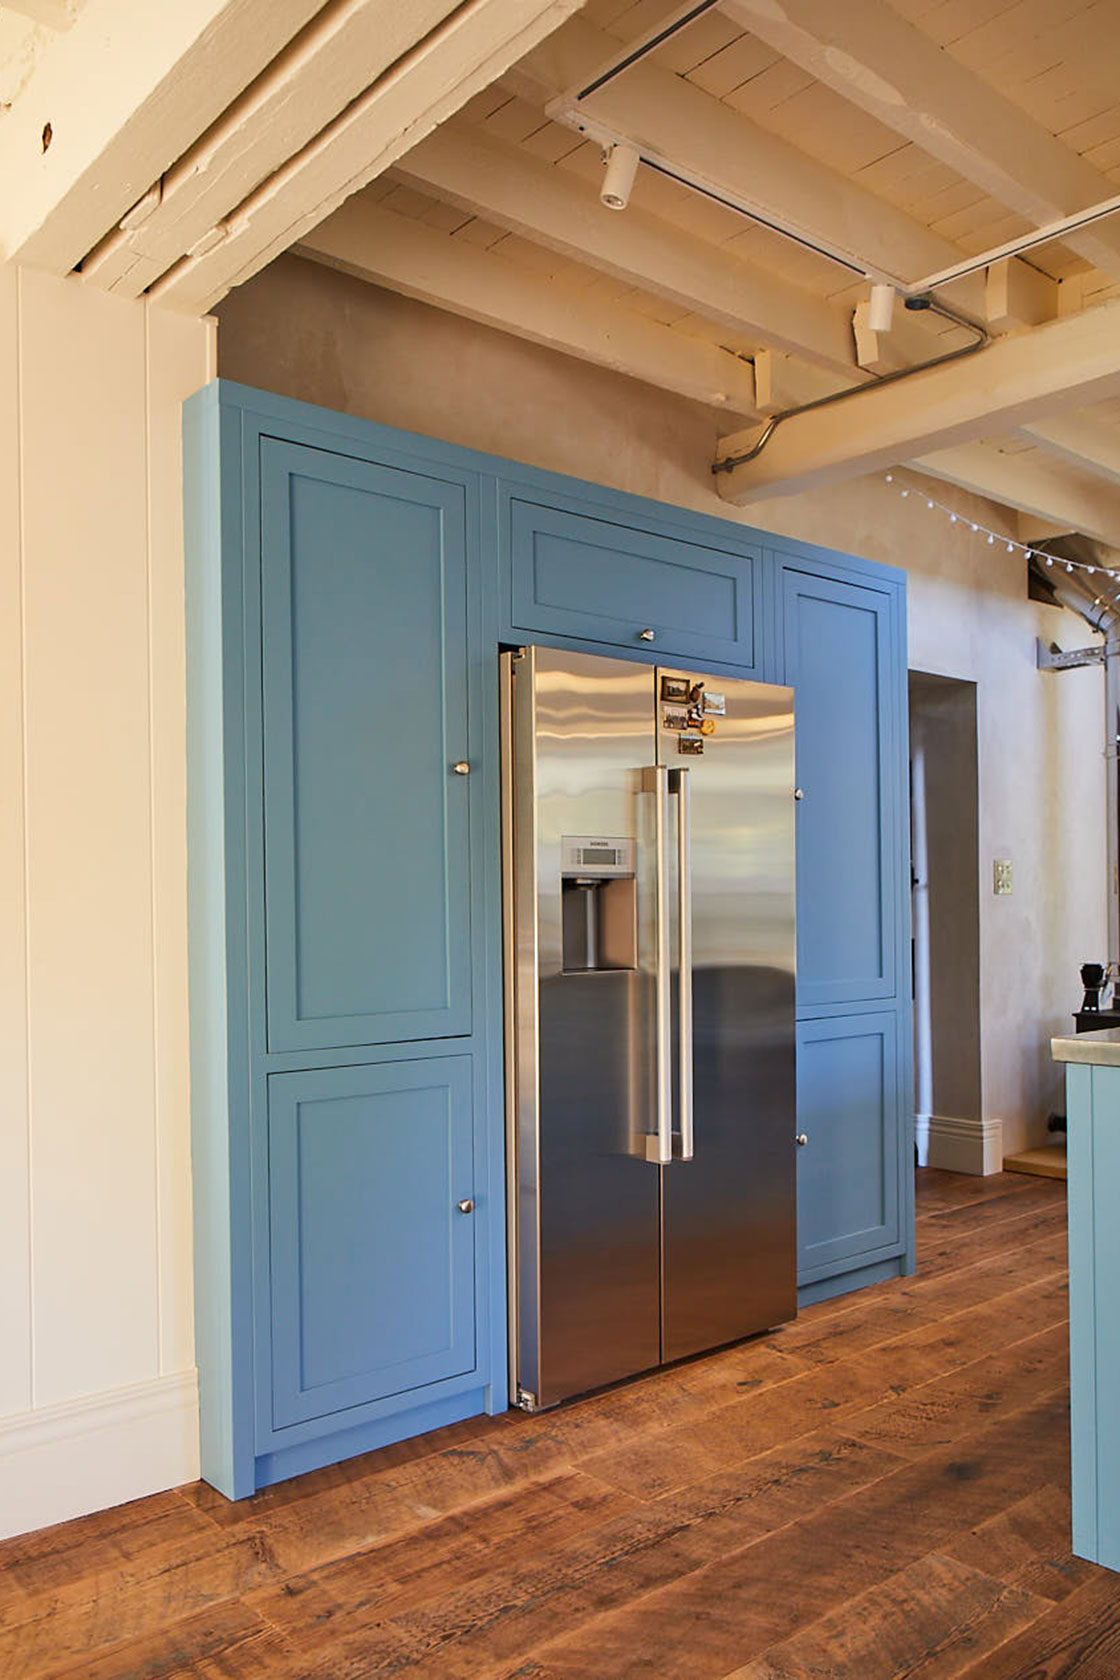 American stainless steel fridge freezer with tall painted light blue kitchen cabinets